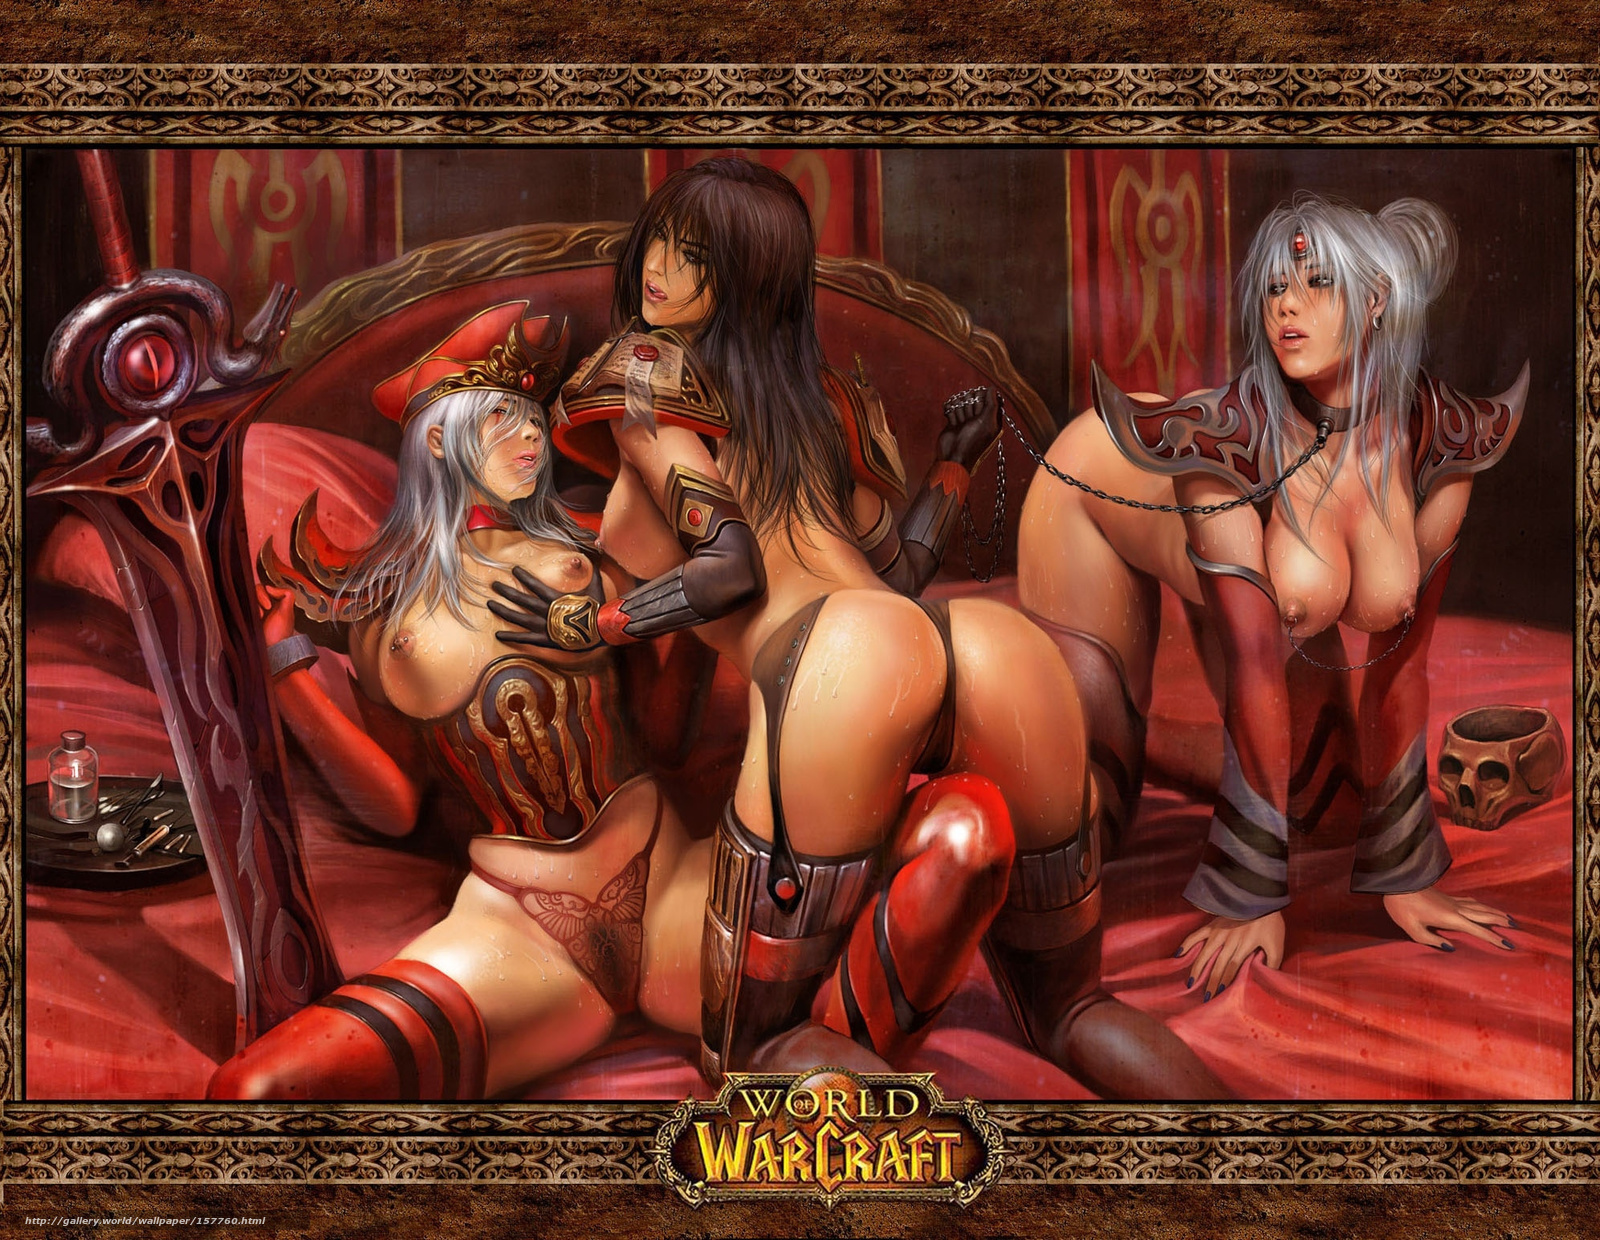 World of warcraft nude picture fucked videos